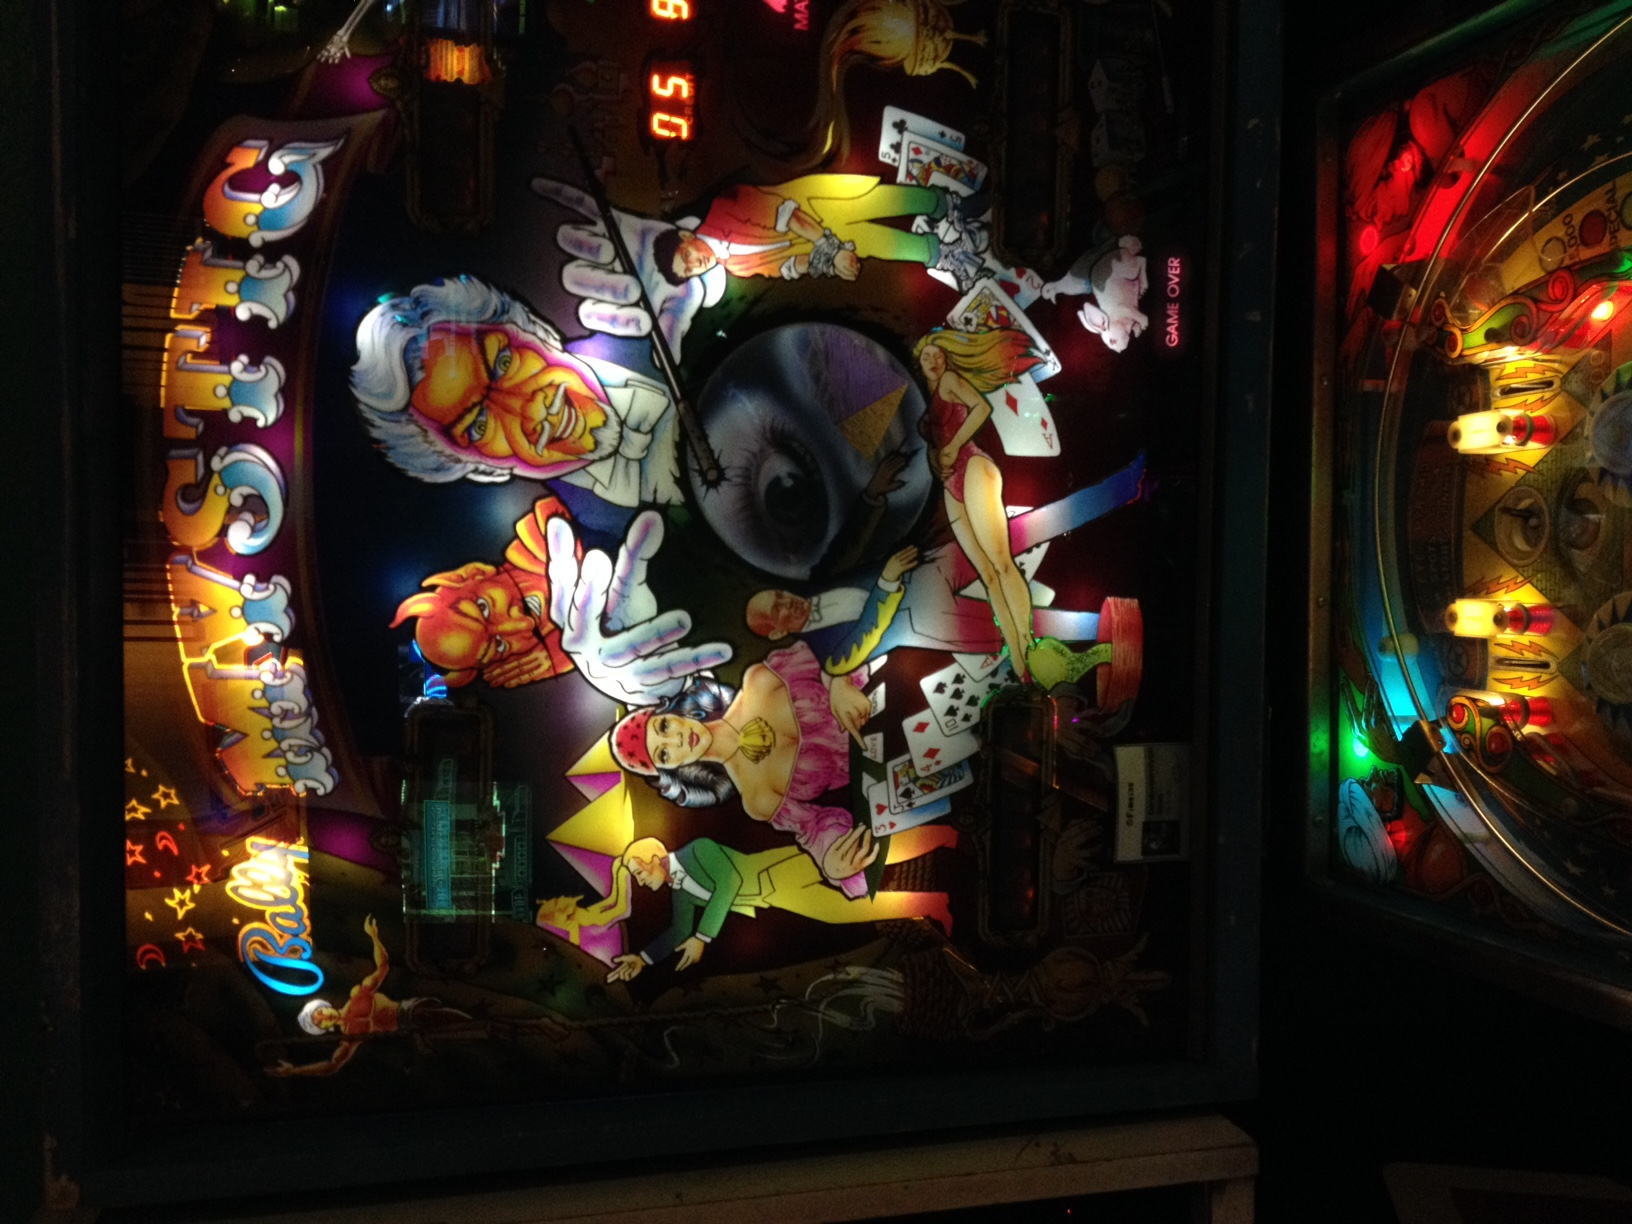 bensweeneyonbass: Mystic [1980 Pinball] (Pinball: 3 Balls) 97,310 points on 2016-01-21 07:56:46